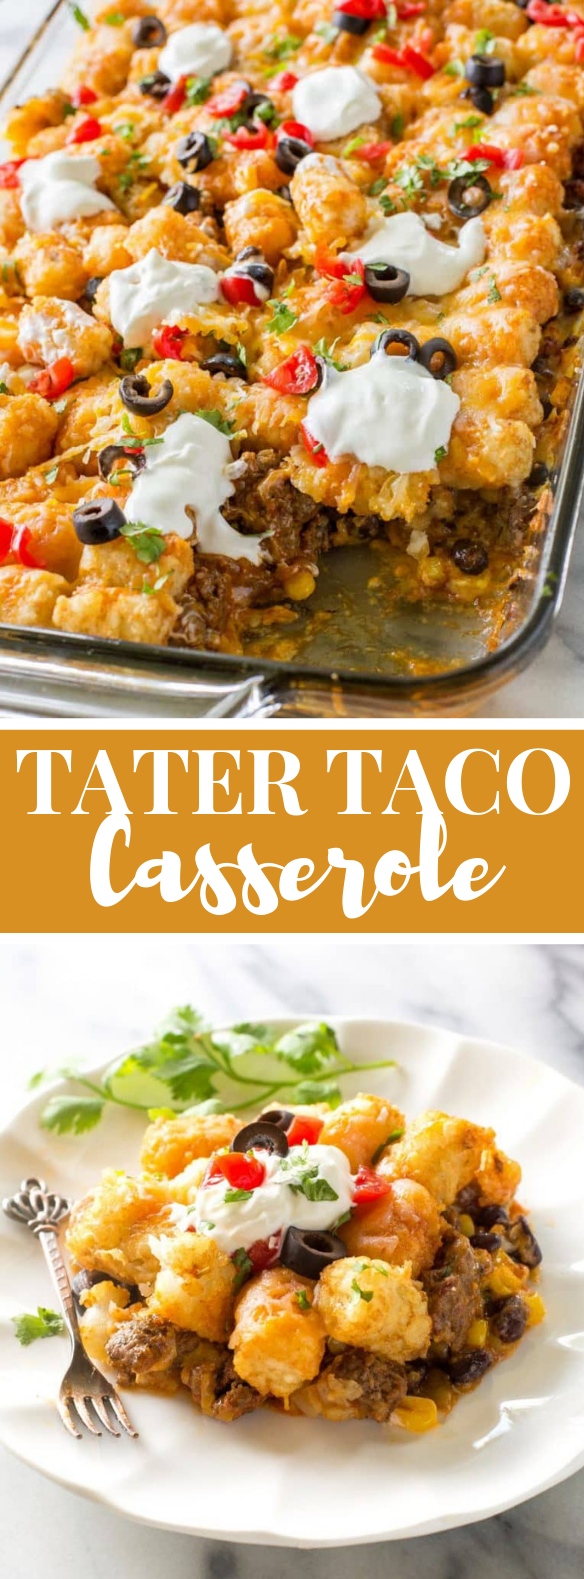 TATER TACO CASSEROLE #dinner #mexican